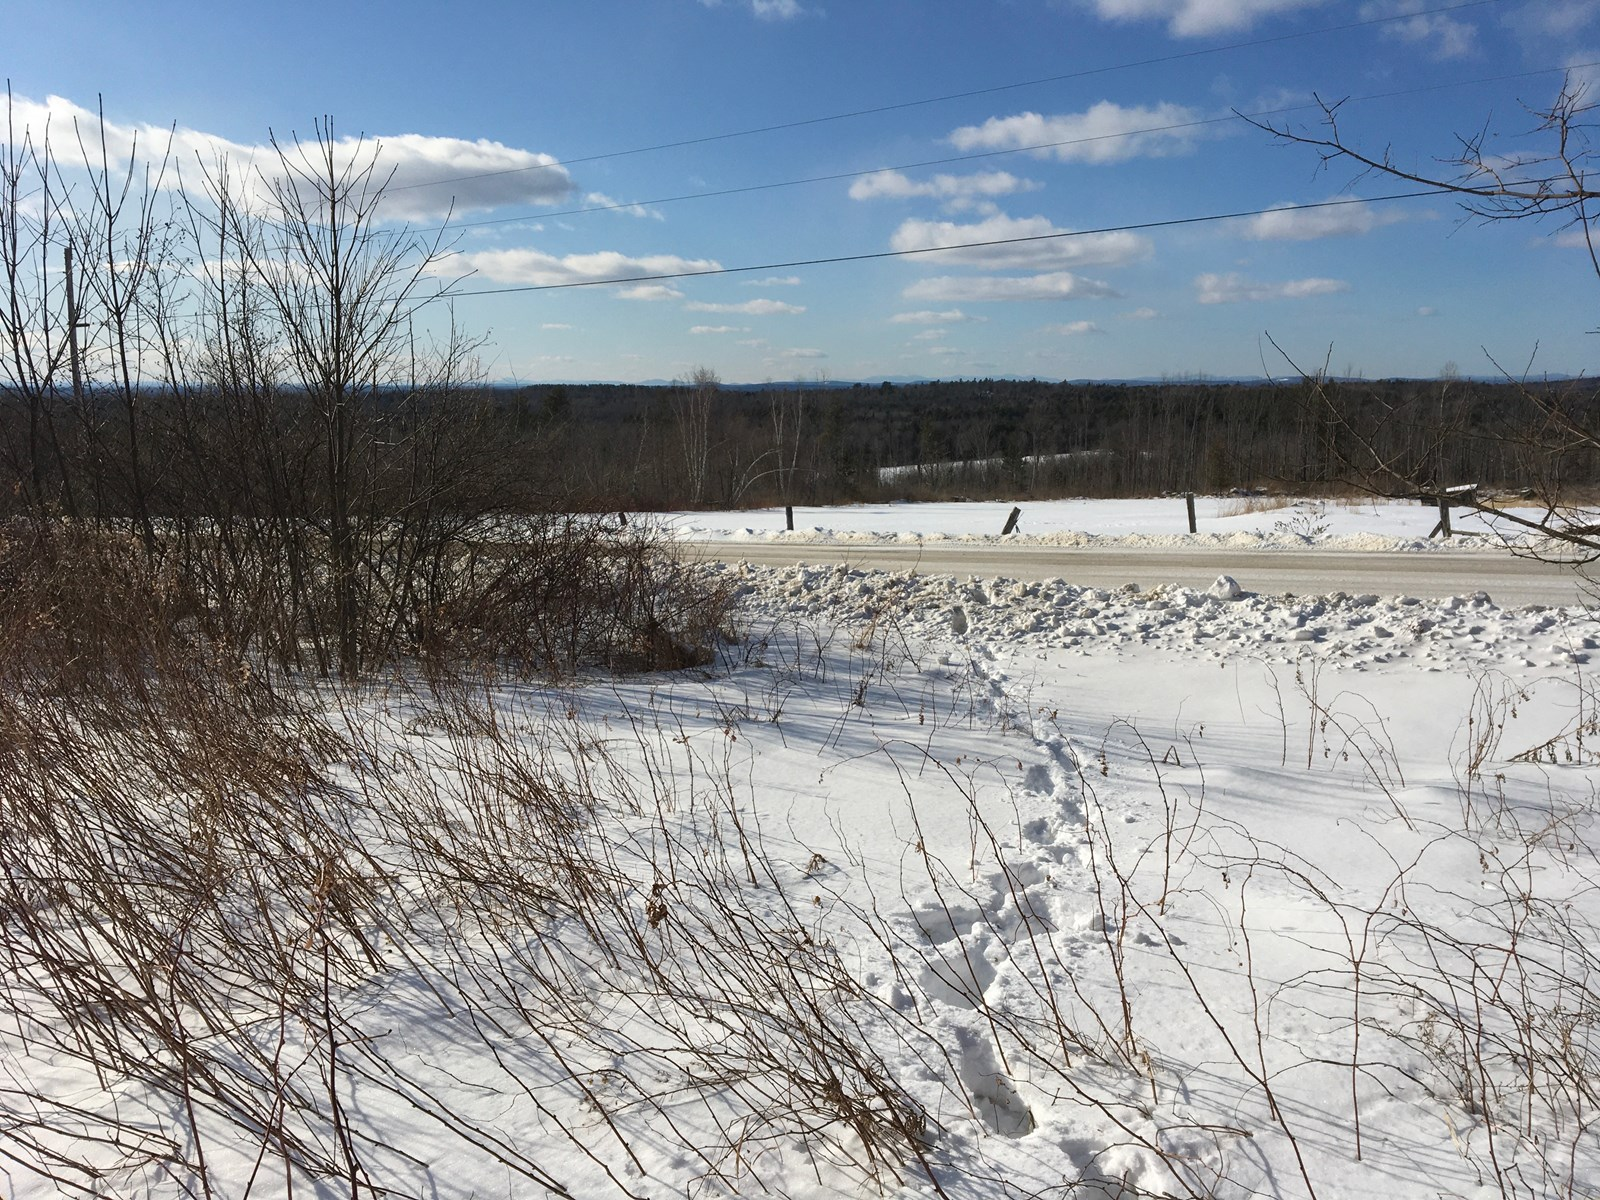 Affordable Land For Sale in Maine